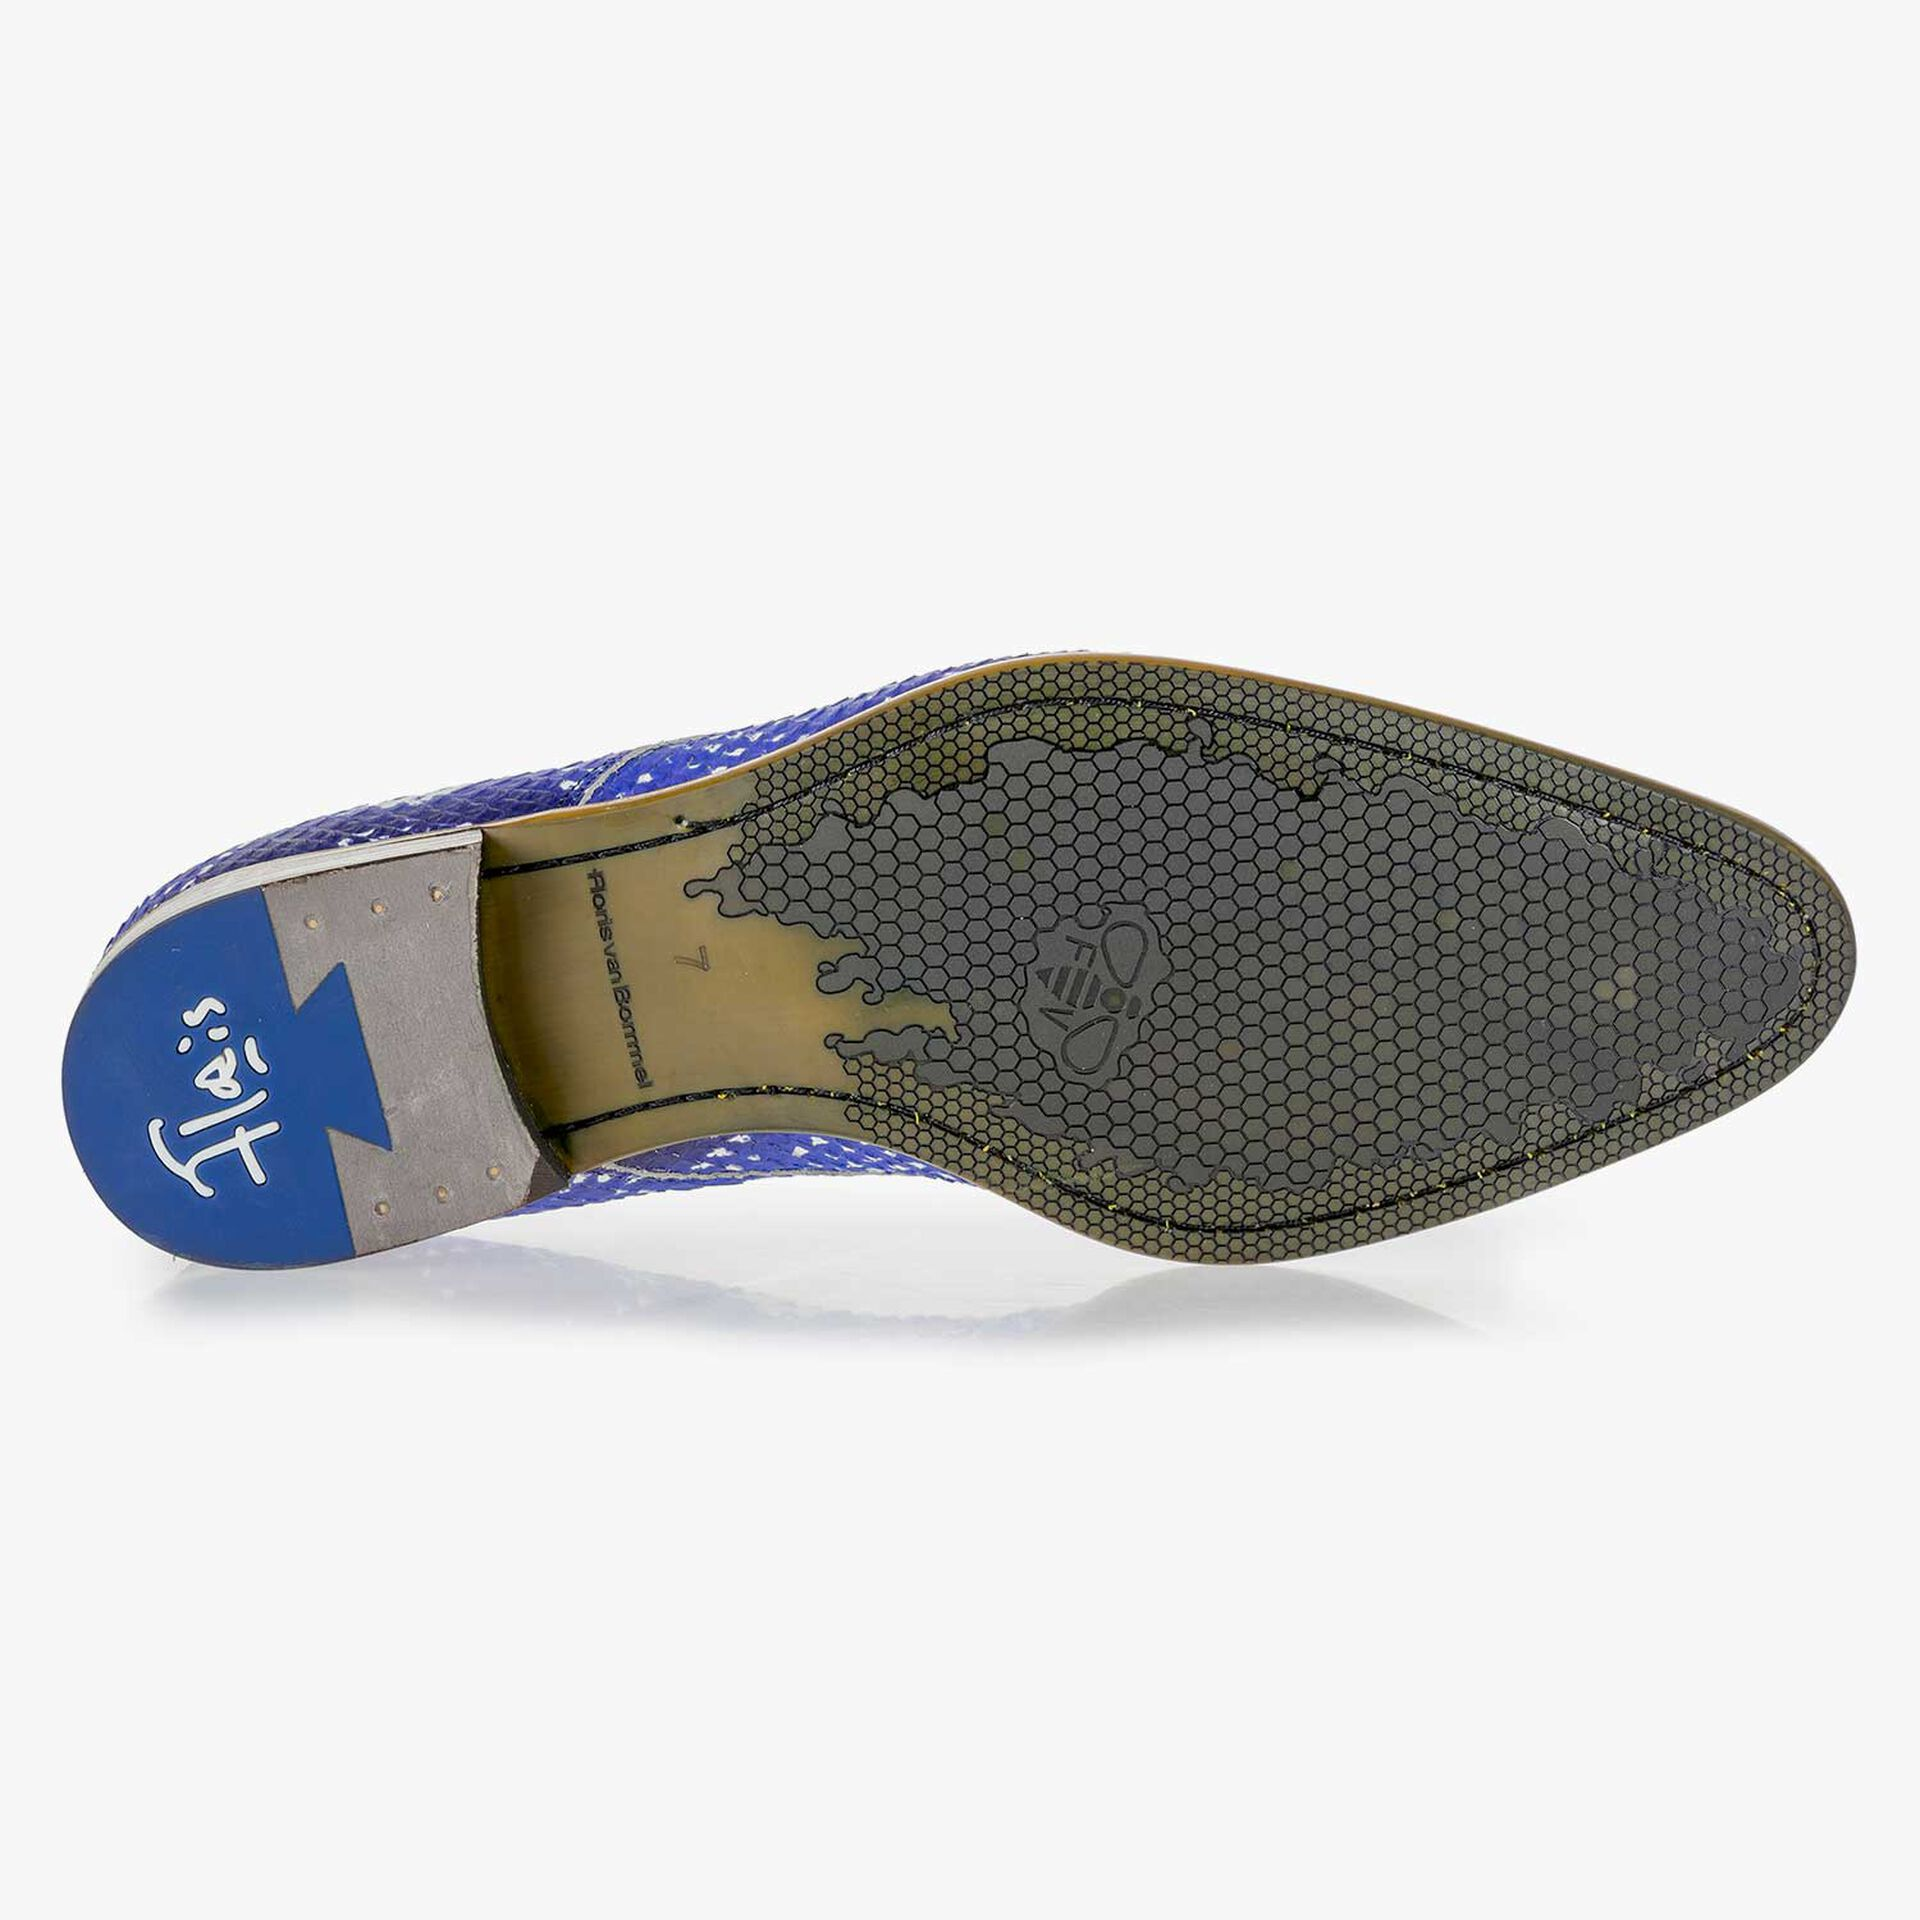 Blue leather lace-shoe with a snake print